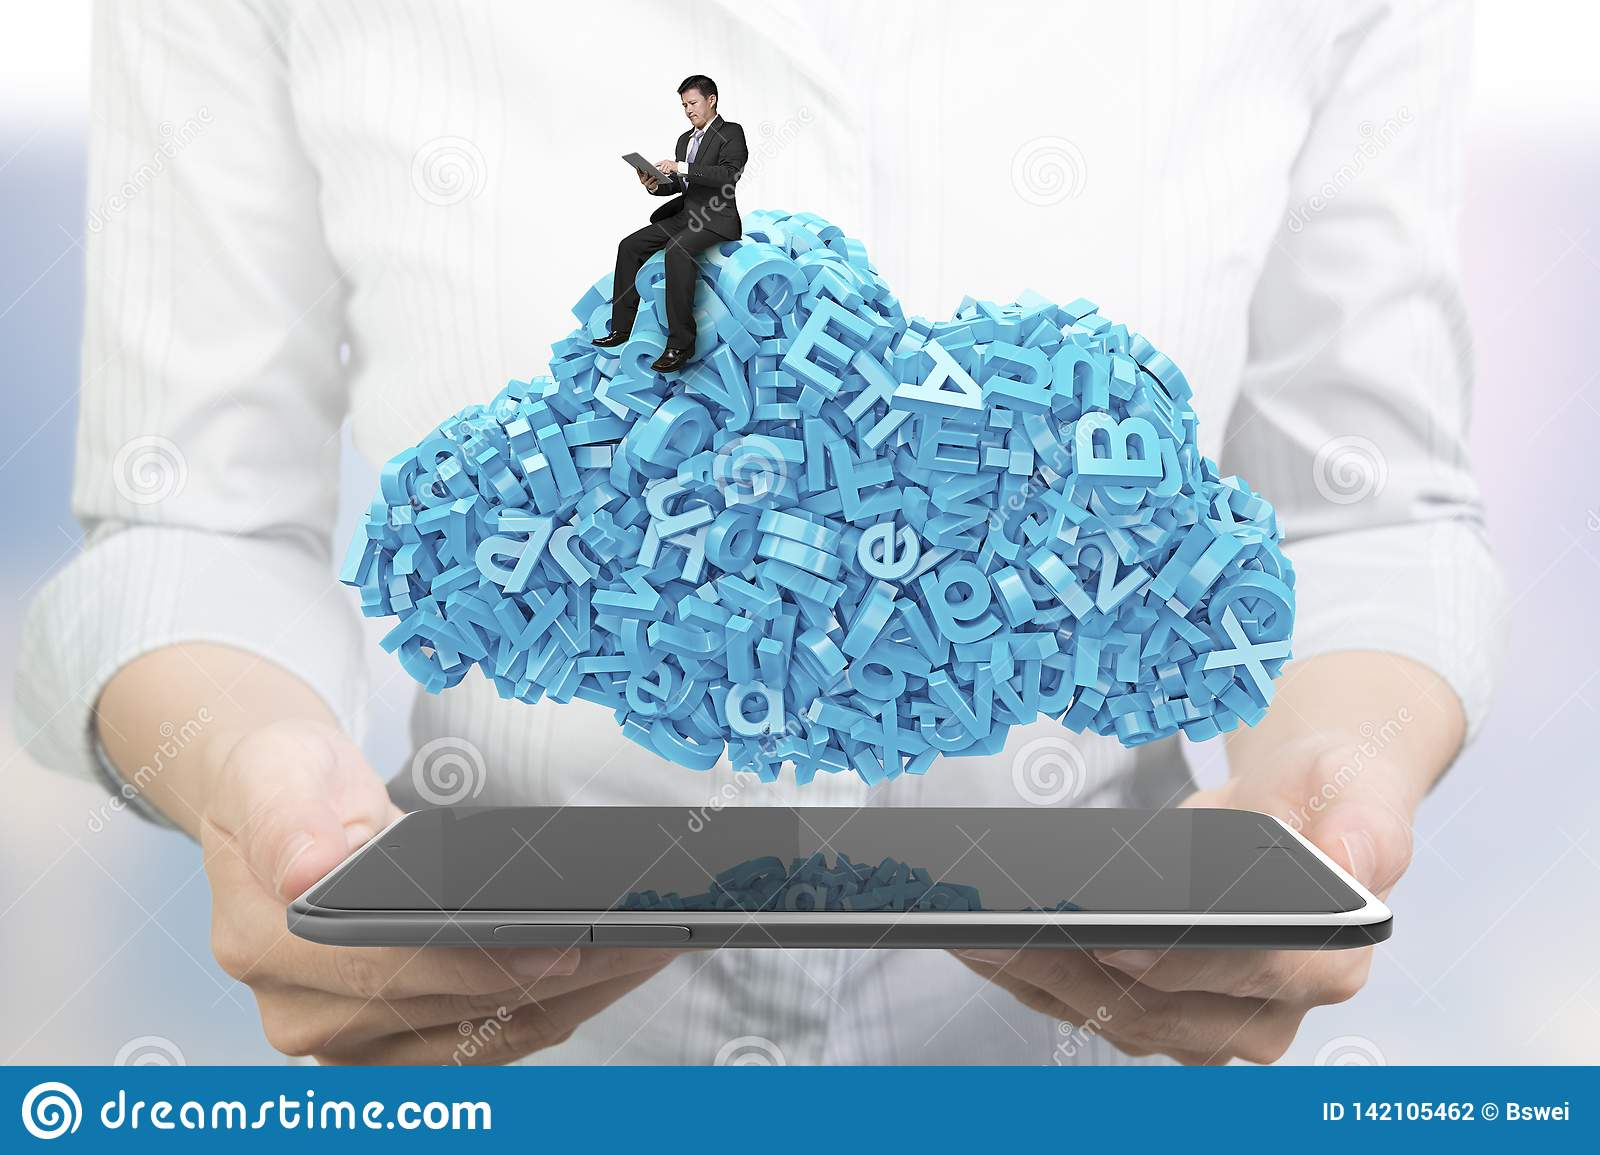 Hands holding smart tablet. Businessman sitting blue characters cloud shape